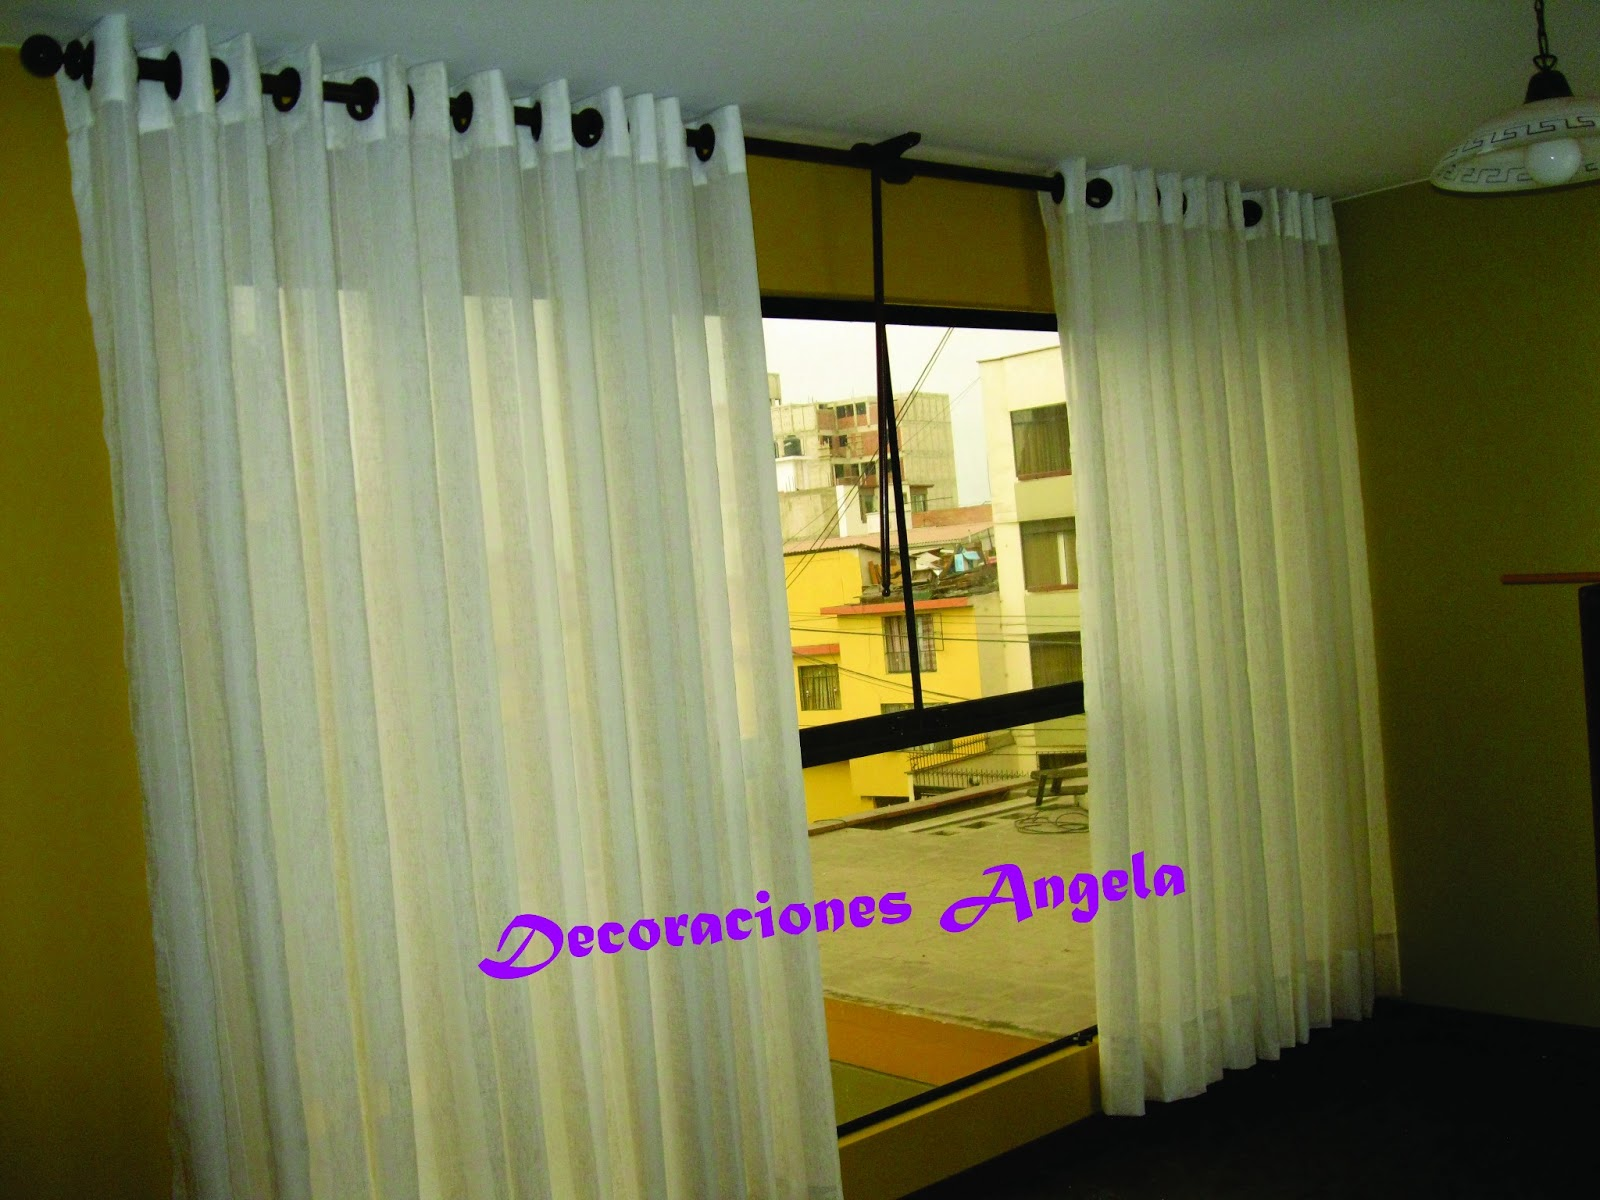 Cortina Decoracion Decoraciones Angela Cortinas Rollers Peru Persianas Peru